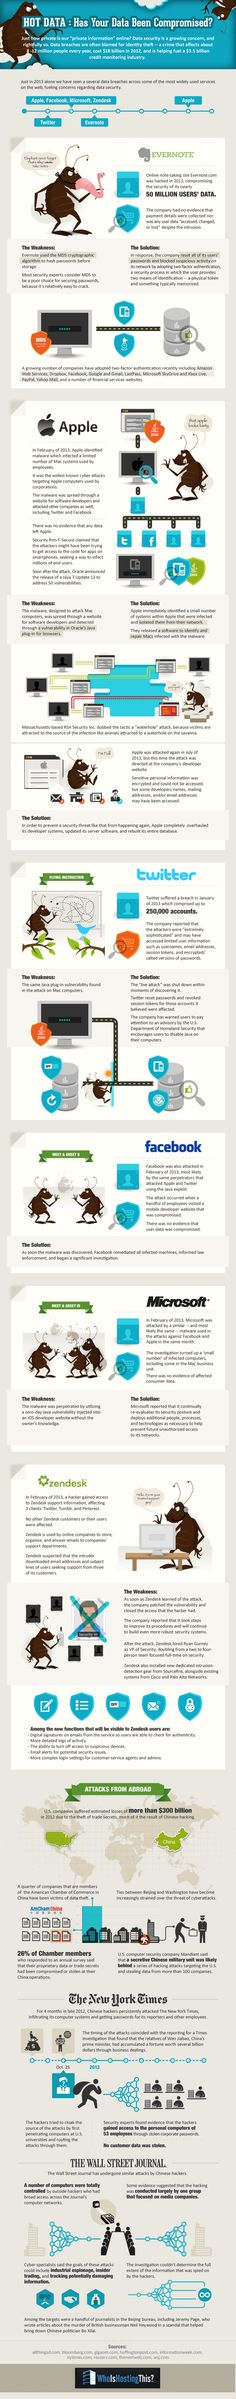 Has Your Data Been Compromised - The Biggest #Security Breaches of 2013 - #infographic #technology